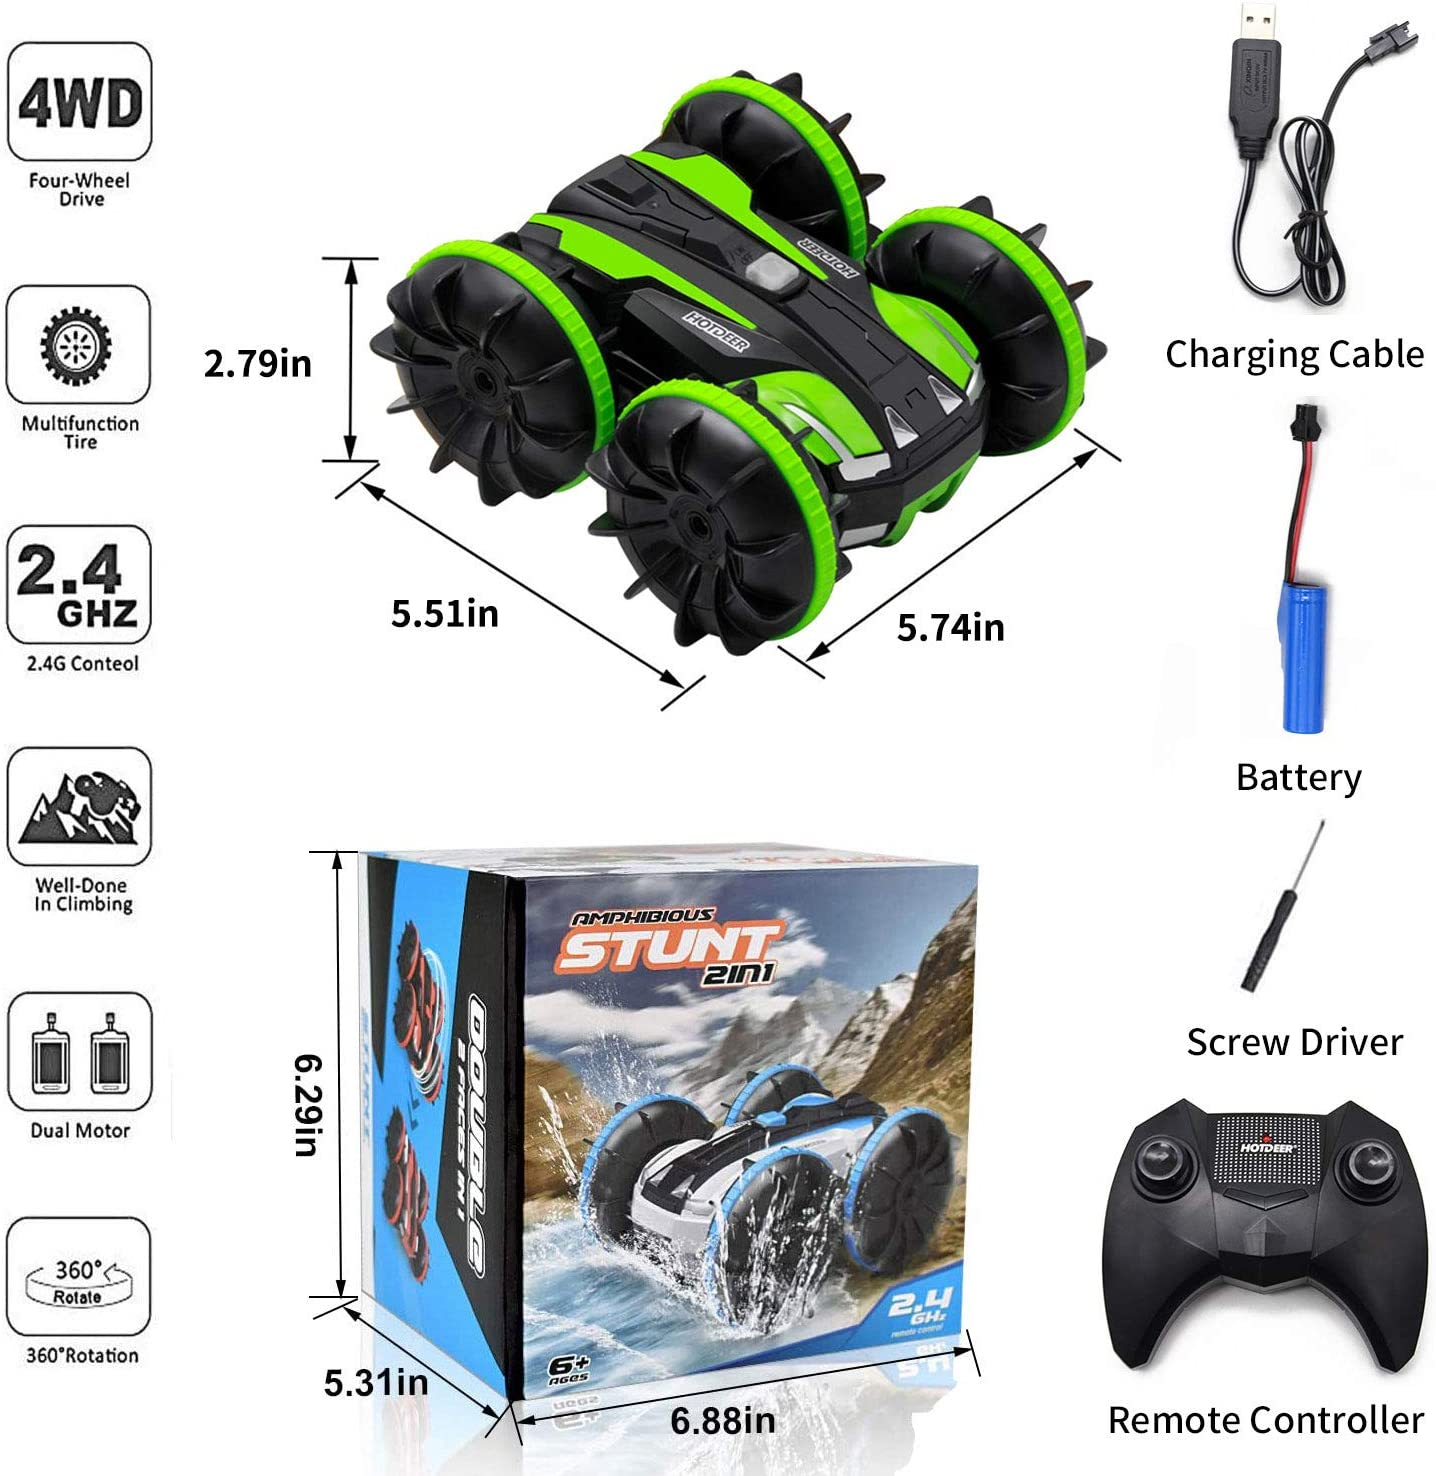 CMST Land Water 2 in 1 RC Cars Toy Amphibious Remote Control Car Boat for Kids Gifts for 4-12 Year Old Boys and Adults 2.4 GHz Rc Stunt Car 4WD Remote Vehicle with Rotate 360 Electric Car Toy